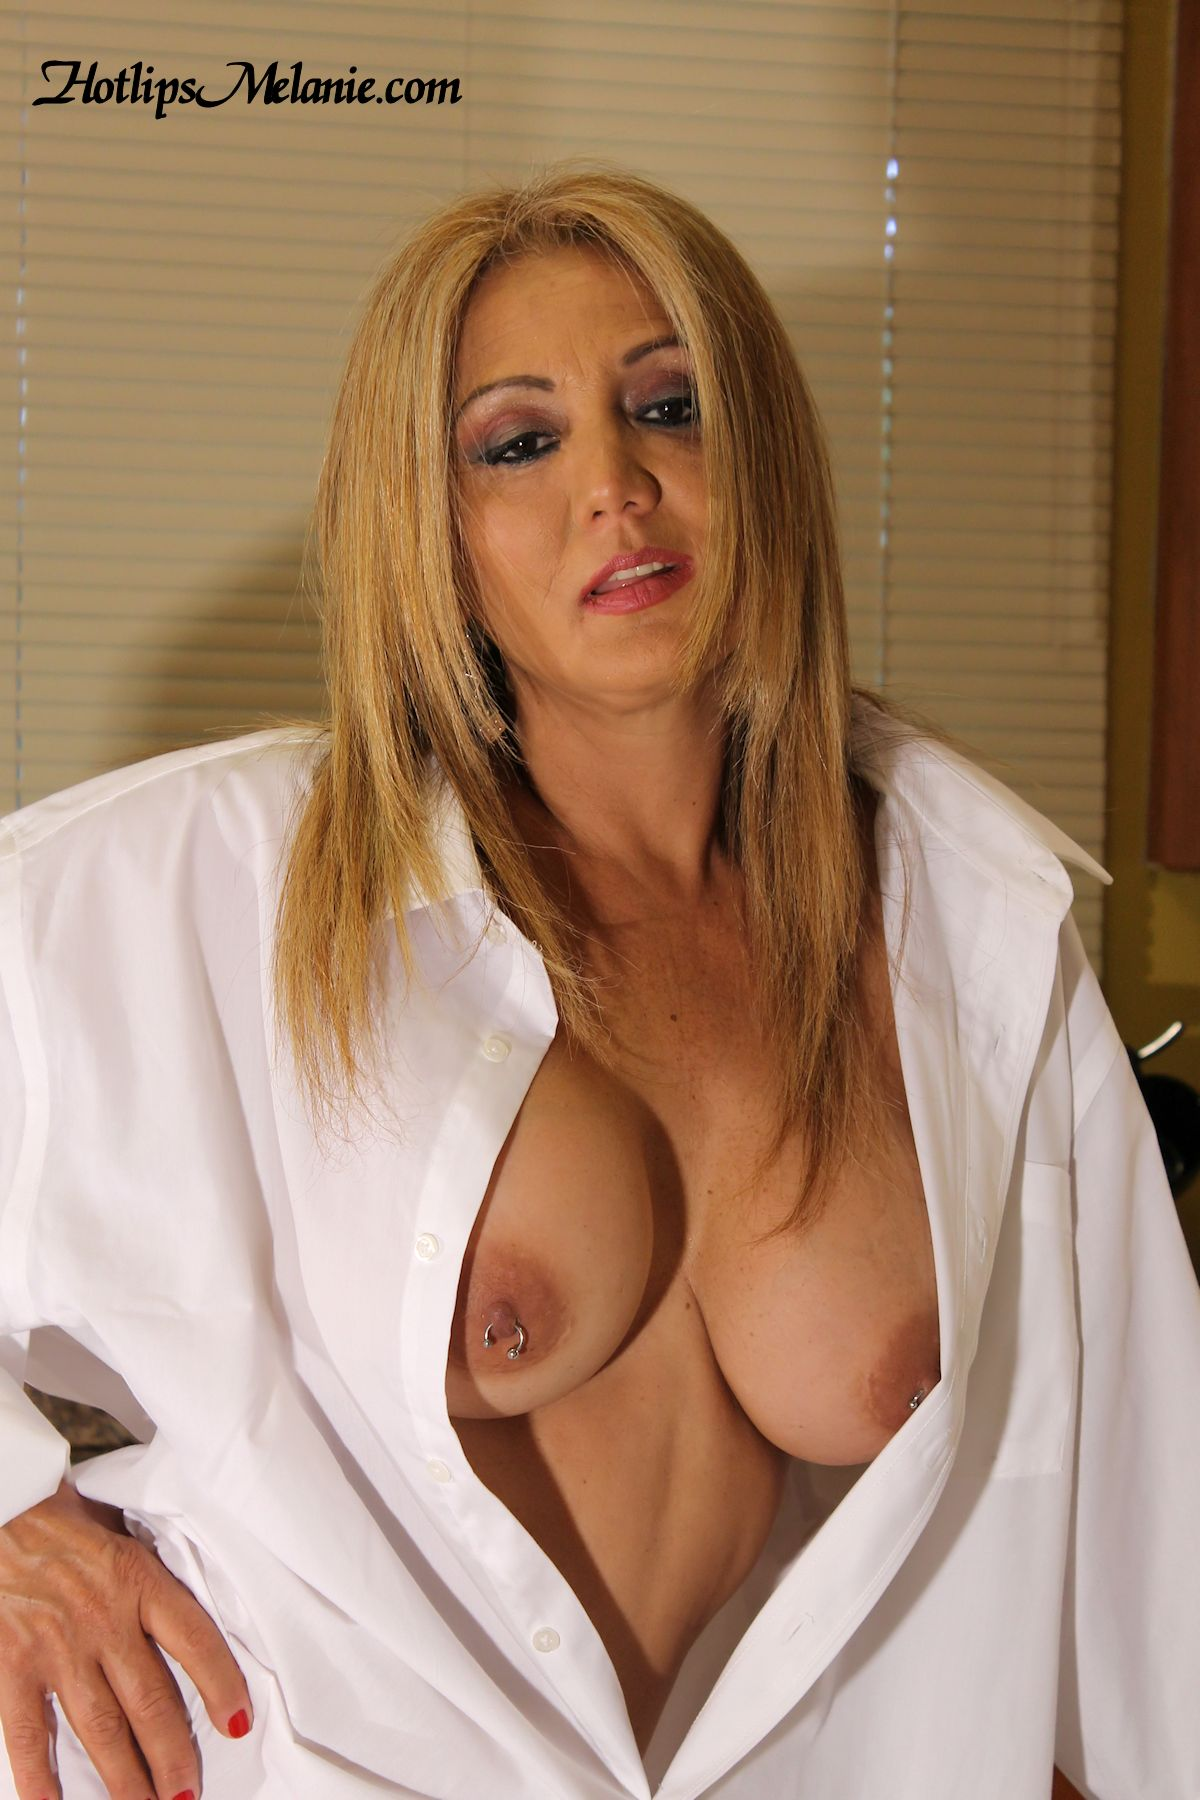 pierce nipples latina women